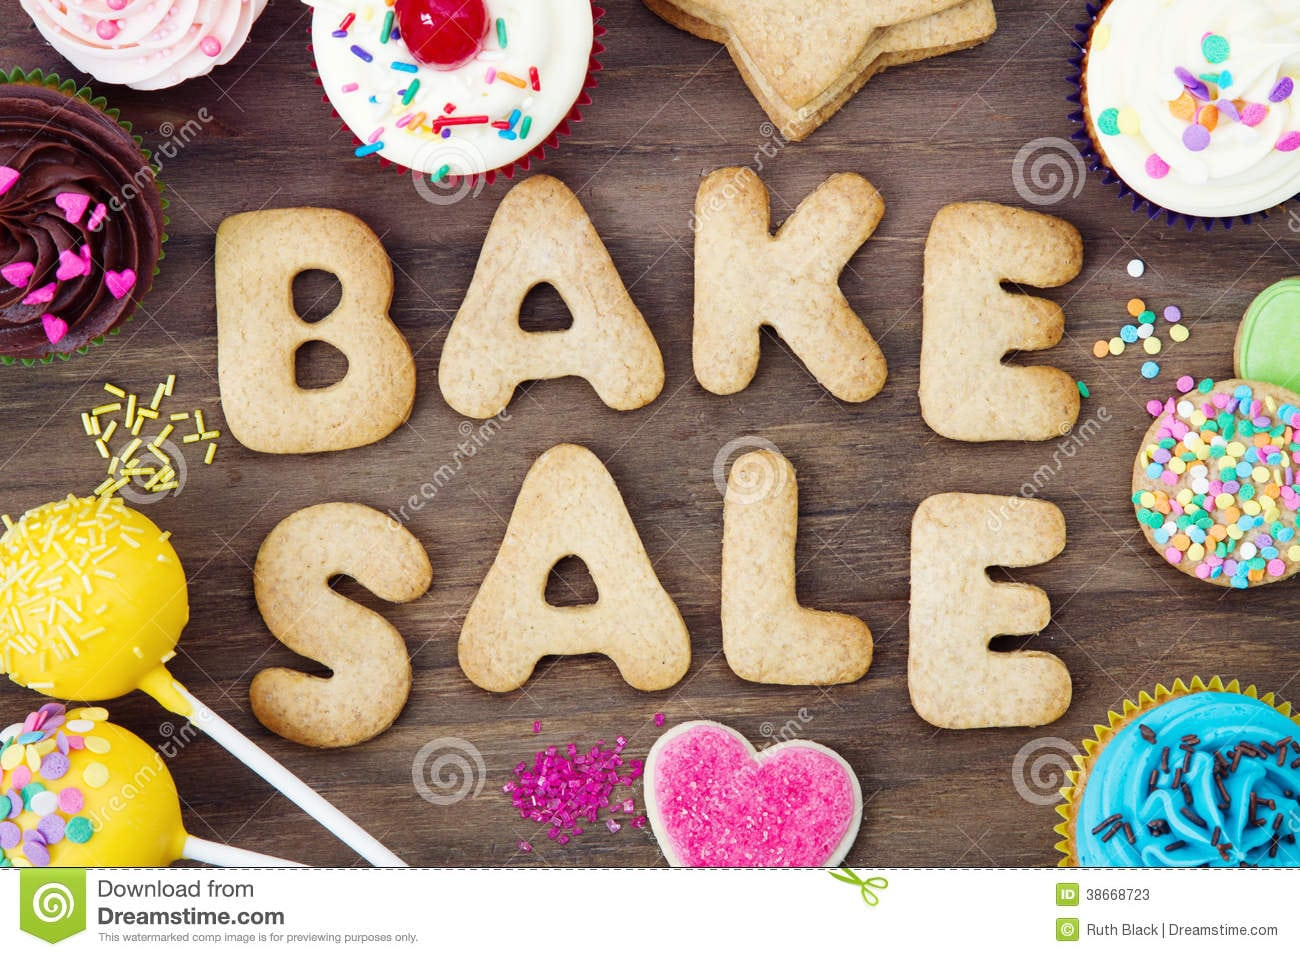 Bake Sale Cookies Stock Image  Image Of Letters, Cookie